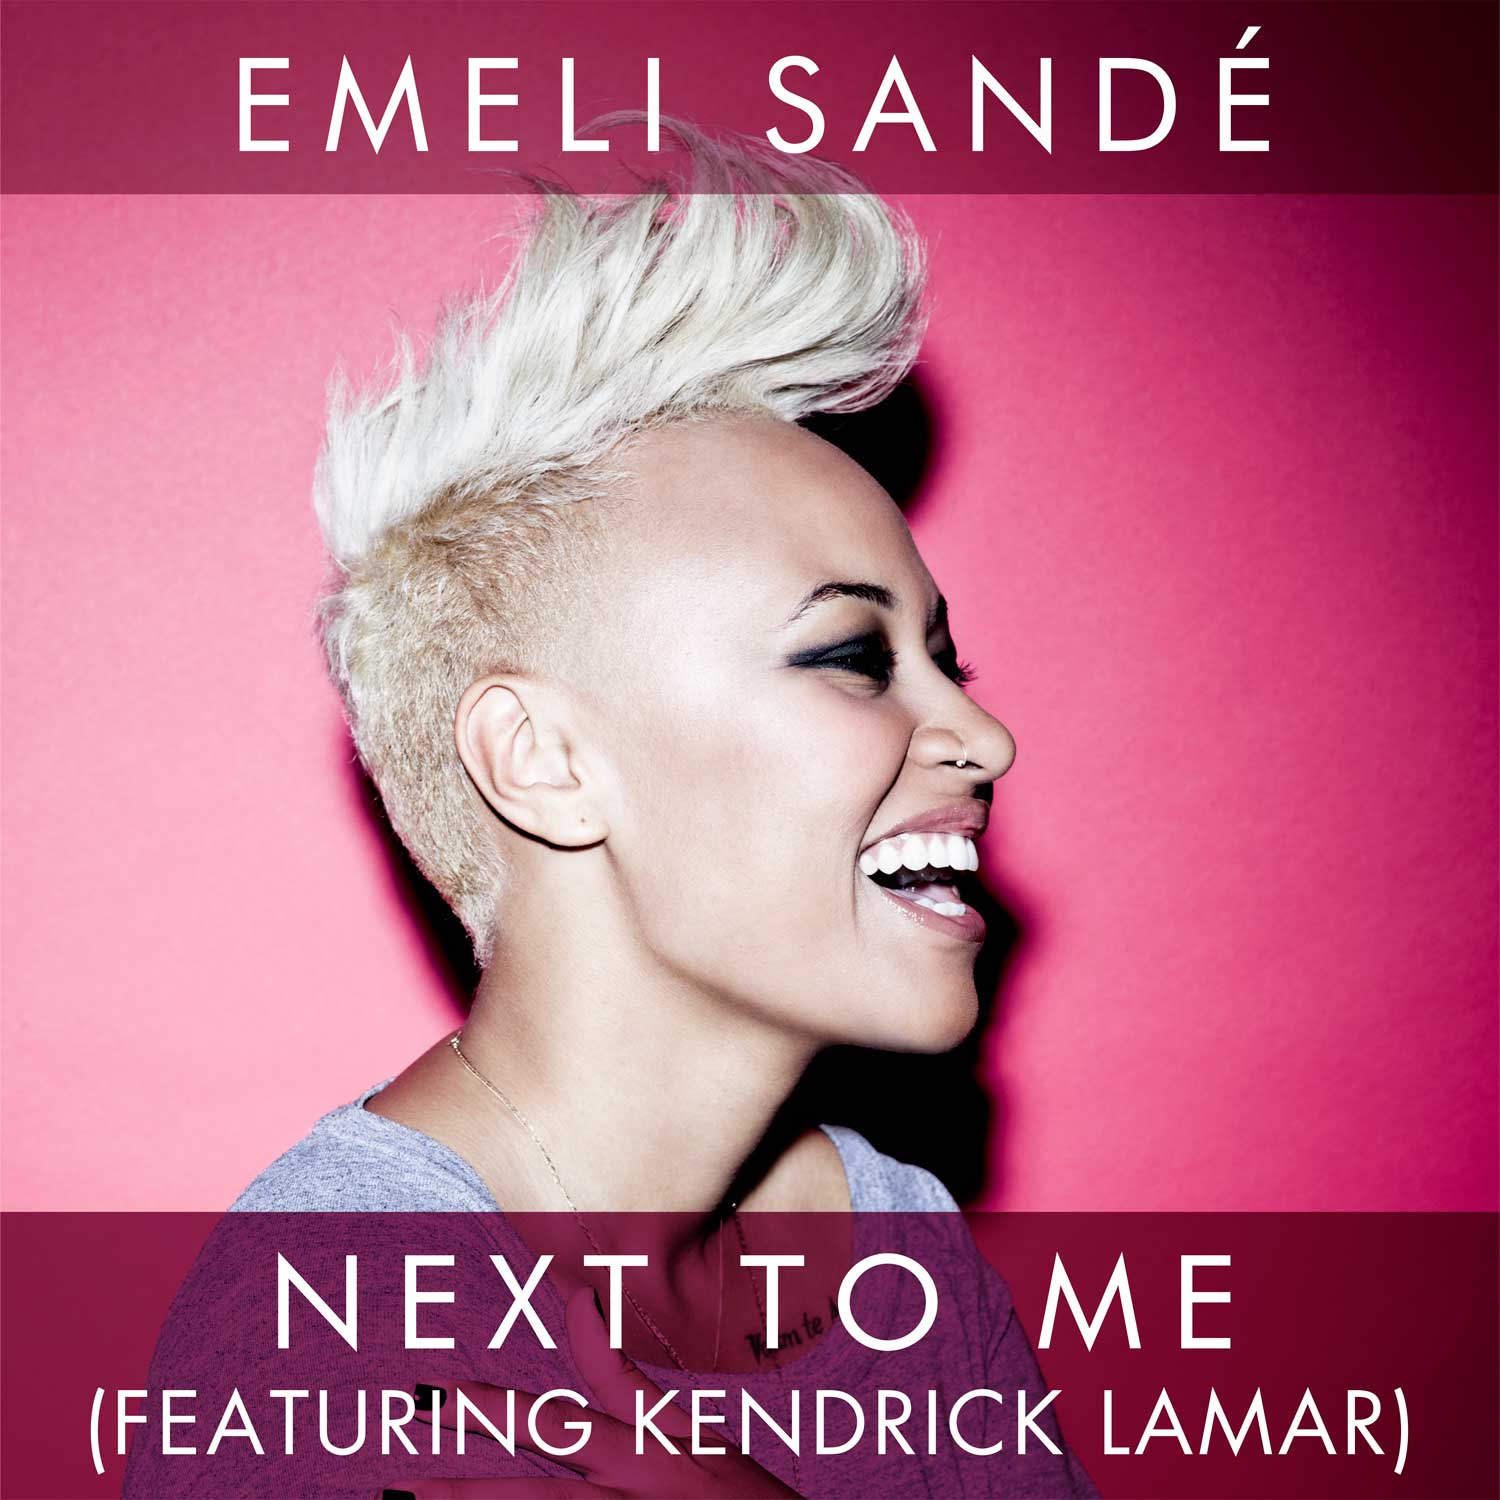 emeli sande and kendrick lamar